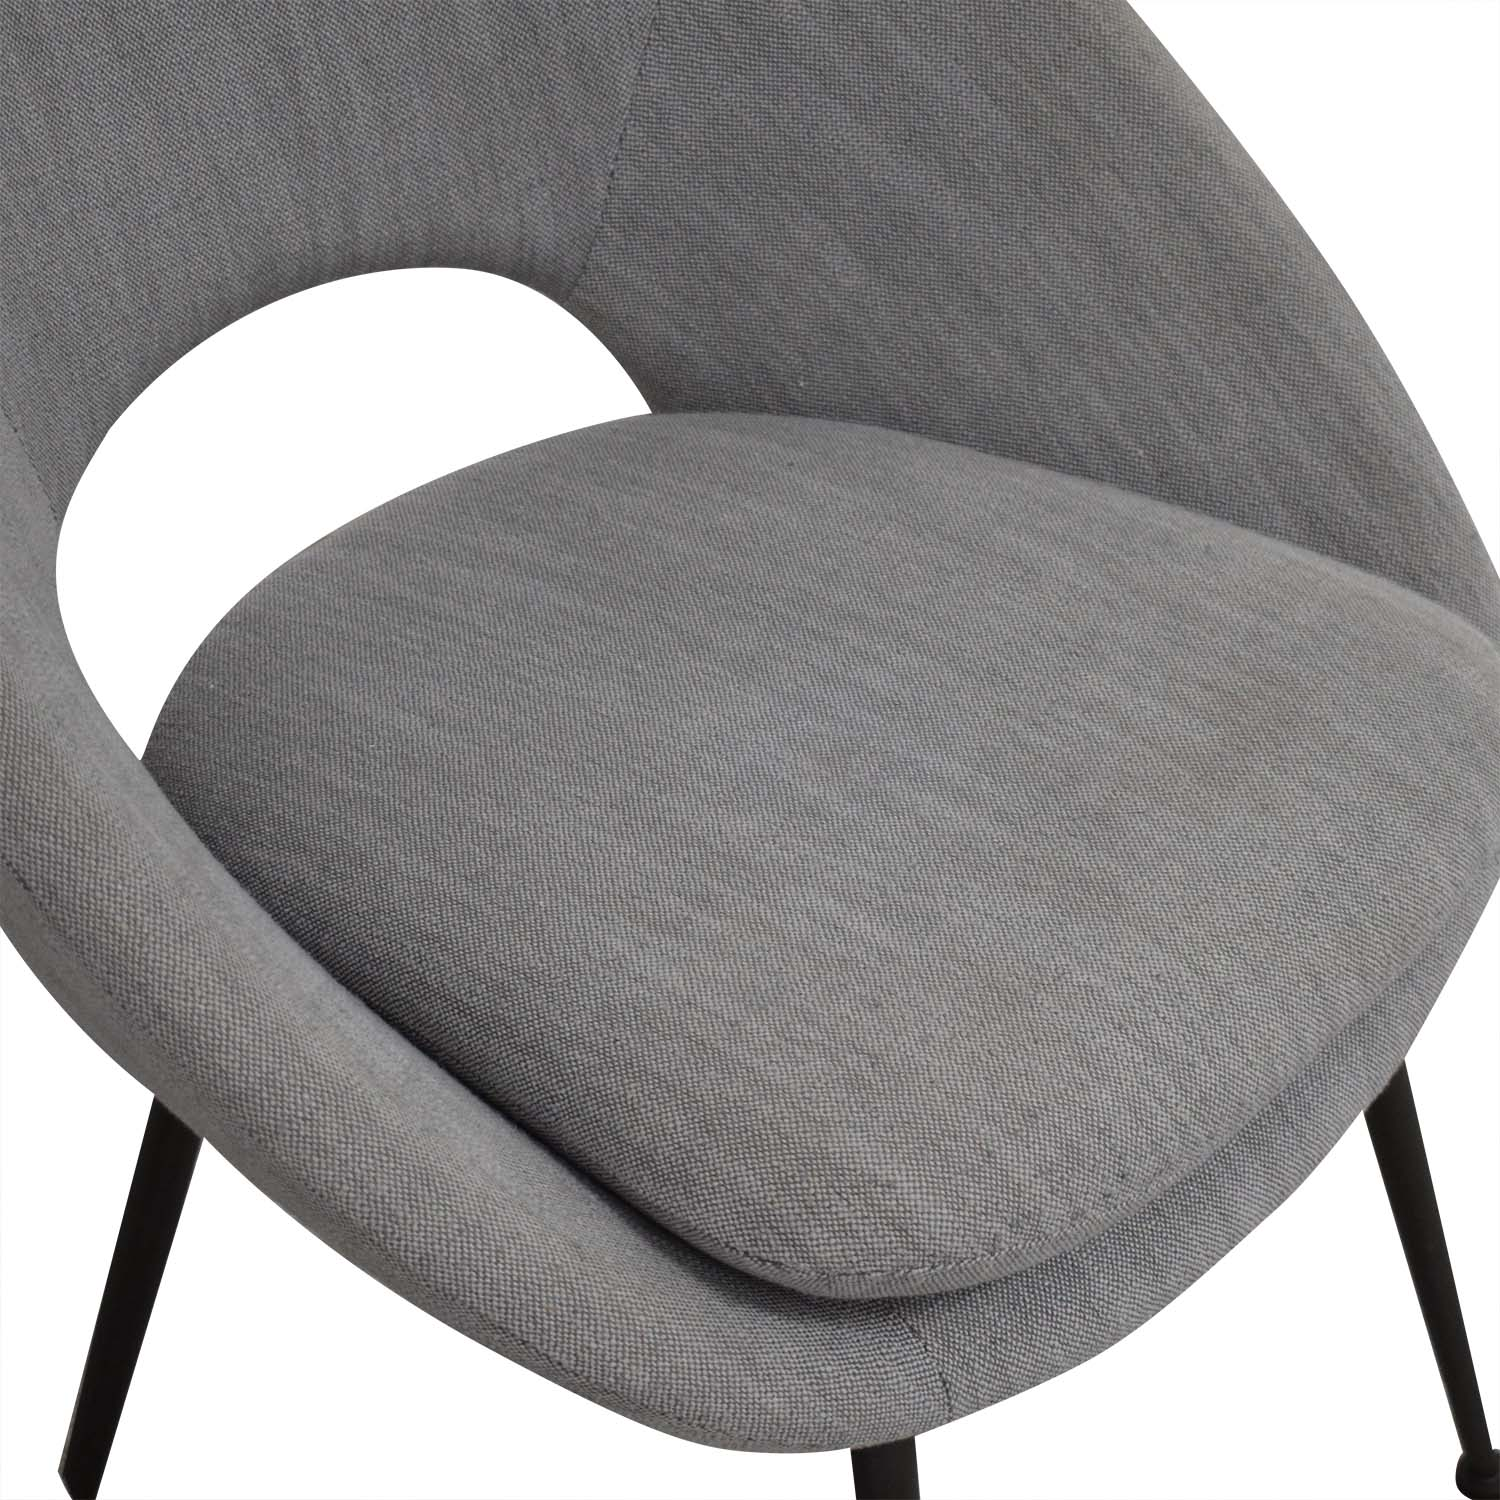 Admirable 55 Off West Elm West Elm Orb Upholstered Dining Chairs Chairs Machost Co Dining Chair Design Ideas Machostcouk